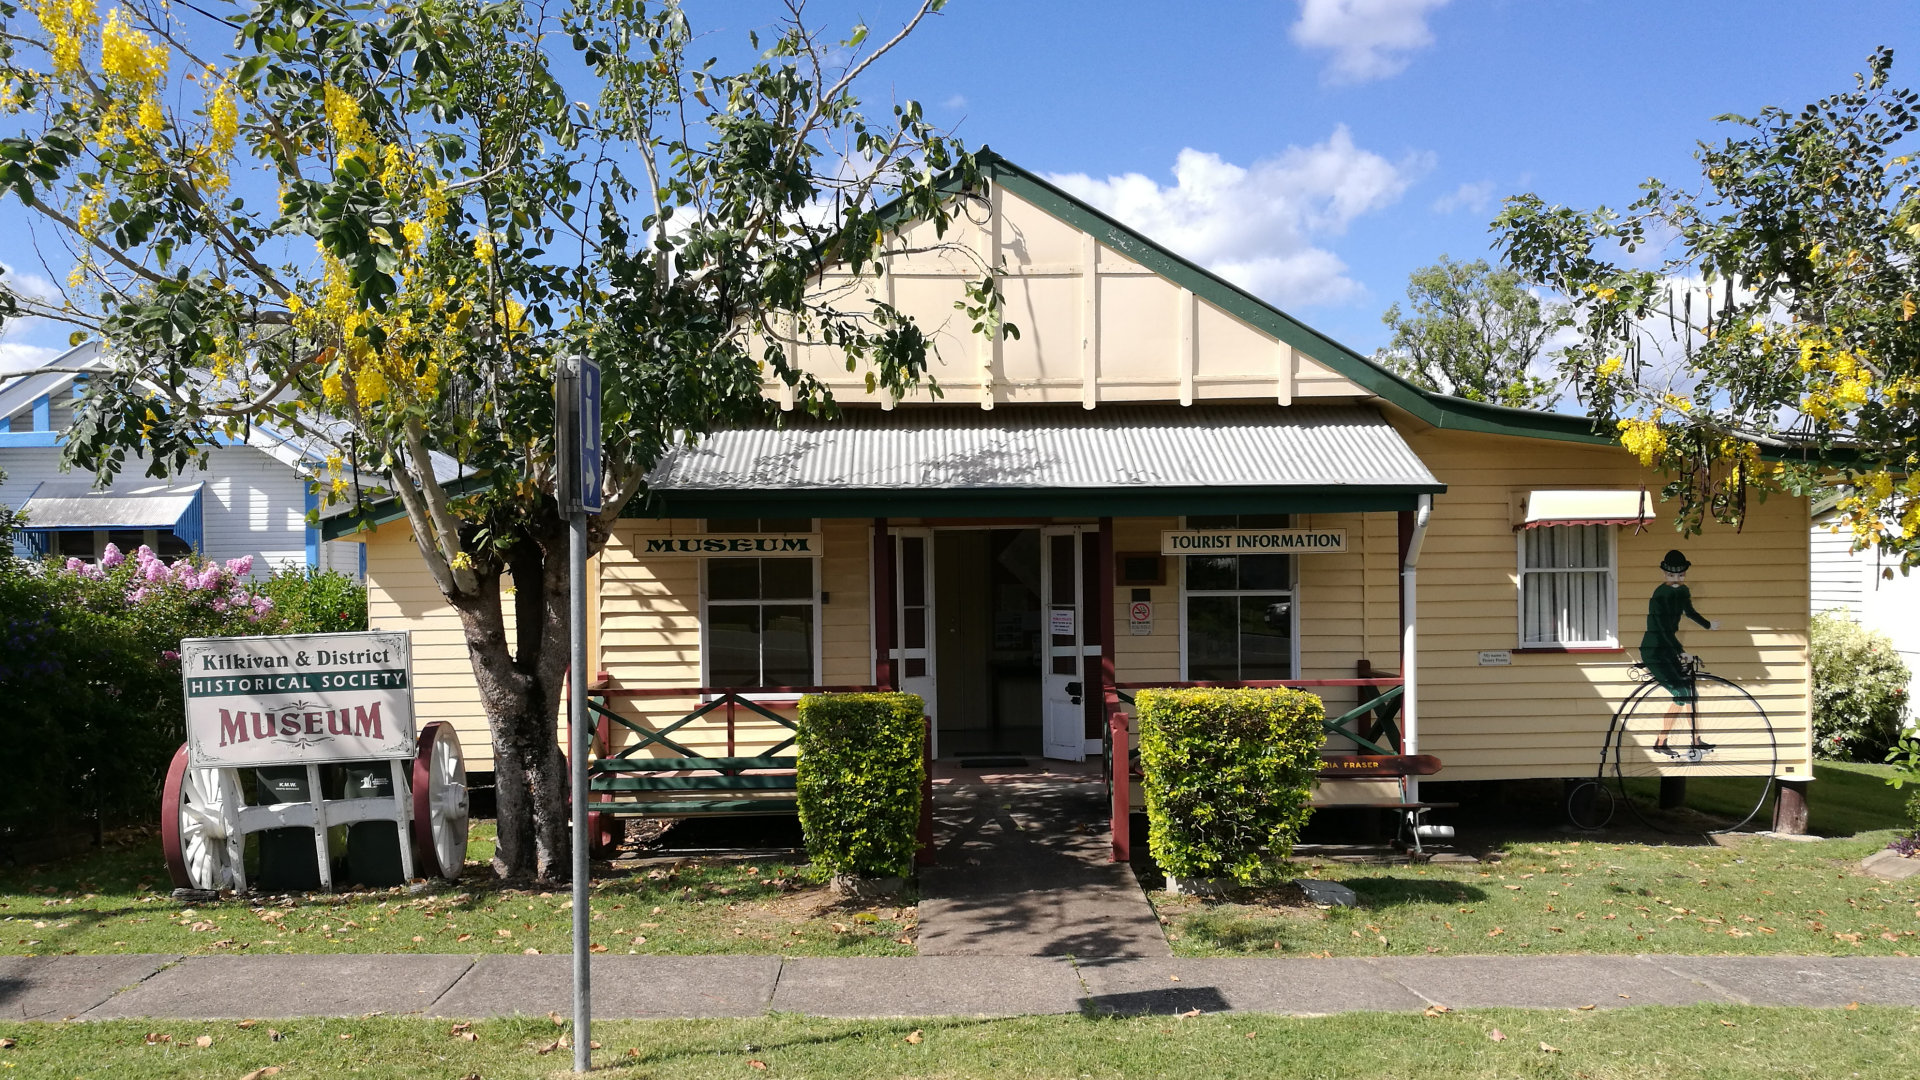 Front of the Kilkivan Museum from the street. The museum contains a display of ore and mineral samples common to the district, other mining related exhibits and artefacts, and historical room displays